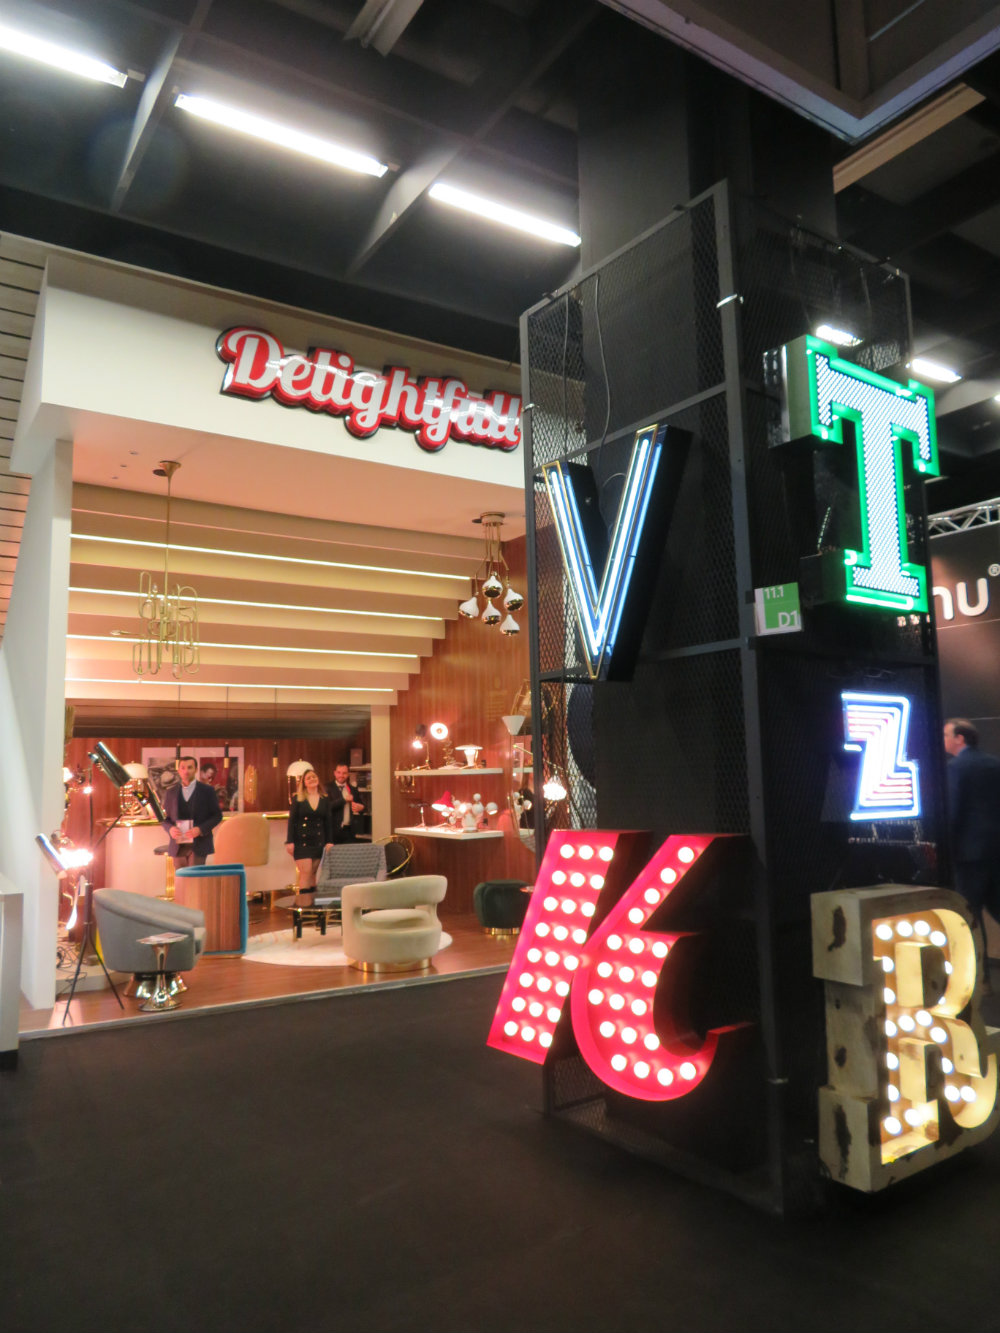 Don't Miss These Amazing Stands At IMM Cologne 2019 imm cologne Don't Miss These Amazing Stands At IMM Cologne 2019 Don   t Miss These Amazing Stands At IMM Cologne 2019 2 1